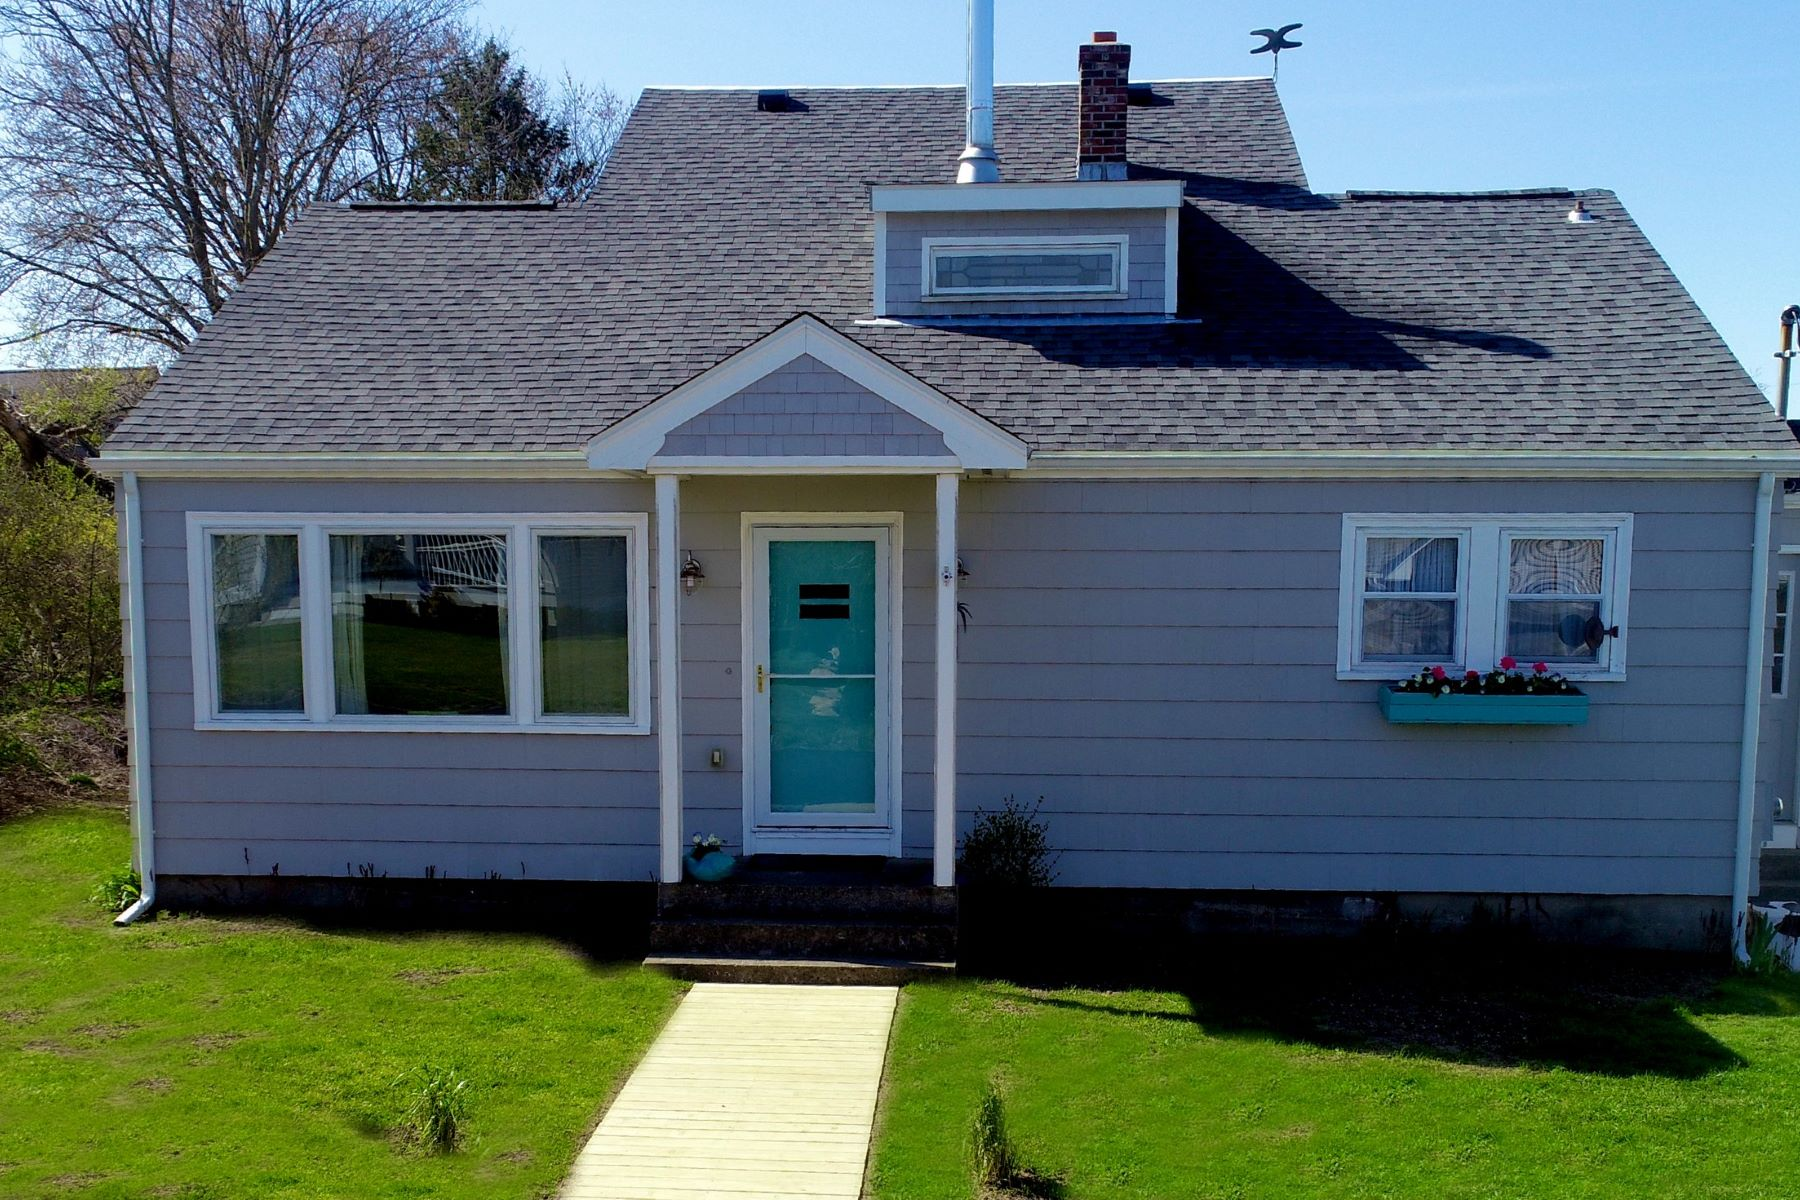 Single Family Homes for Sale at Near Ocean Beaches 110 Orchard Avenue Middletown, Rhode Island 02842 United States